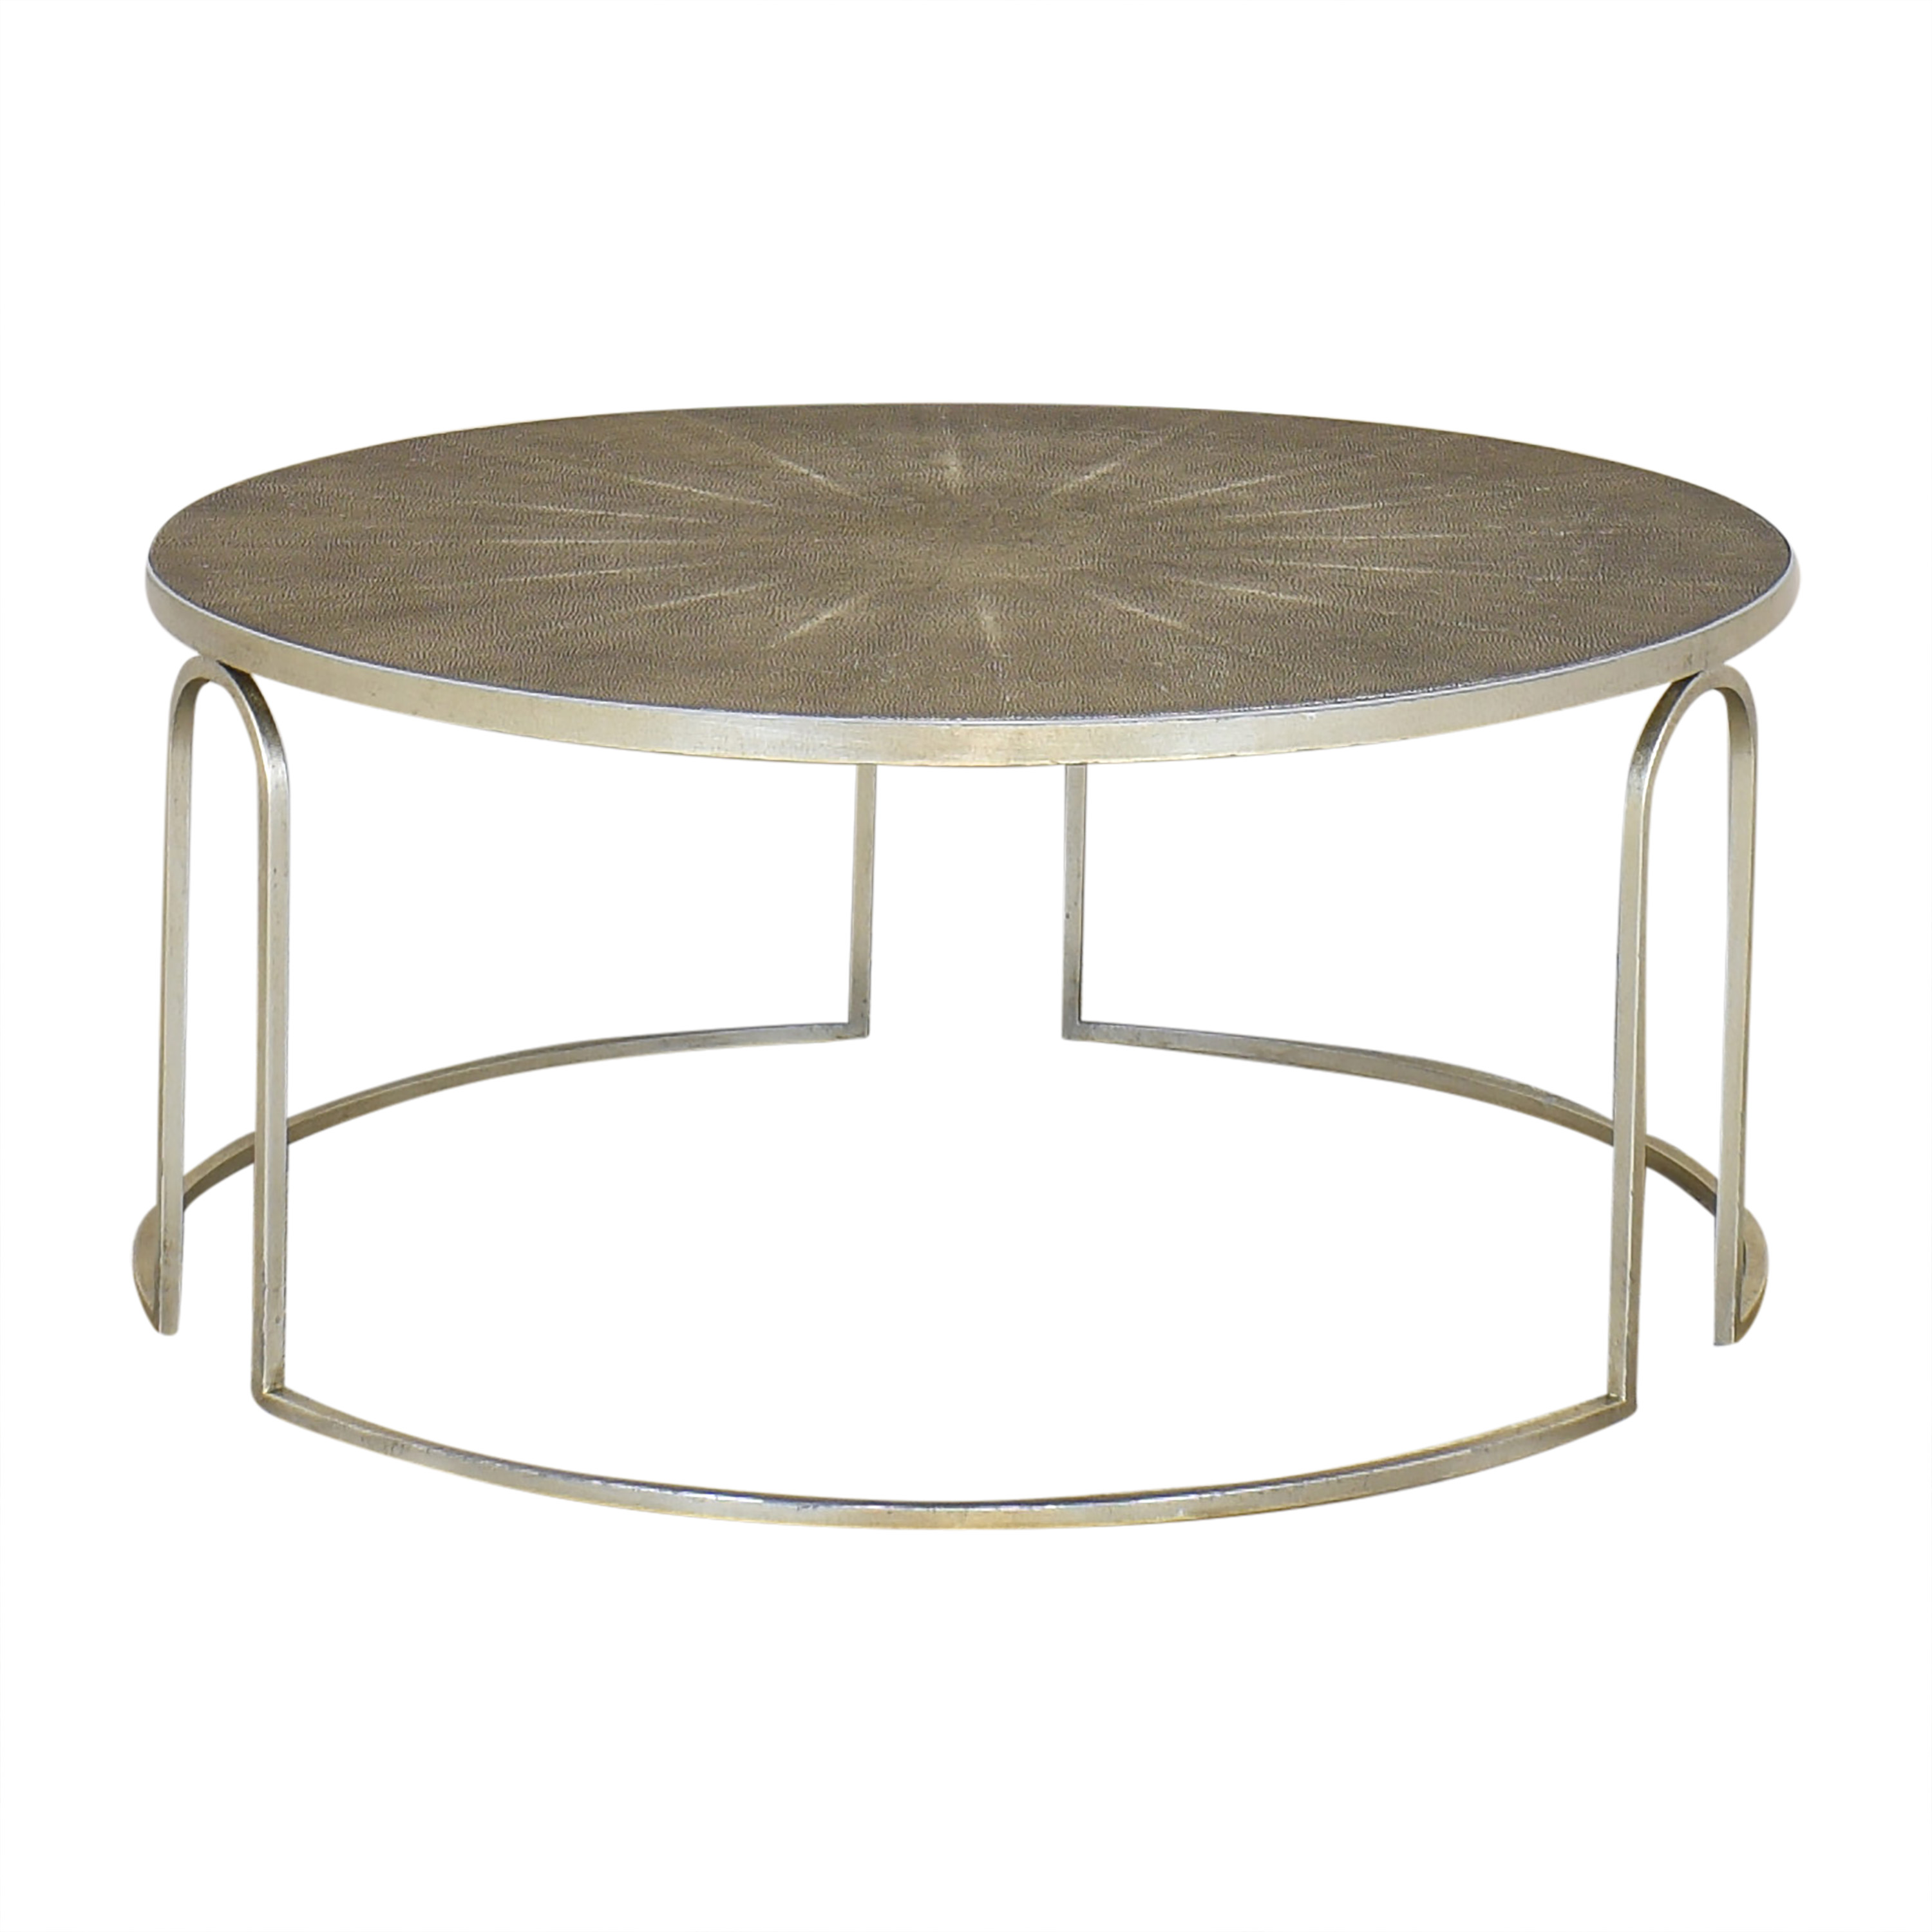 Century Round Coffee Table sale